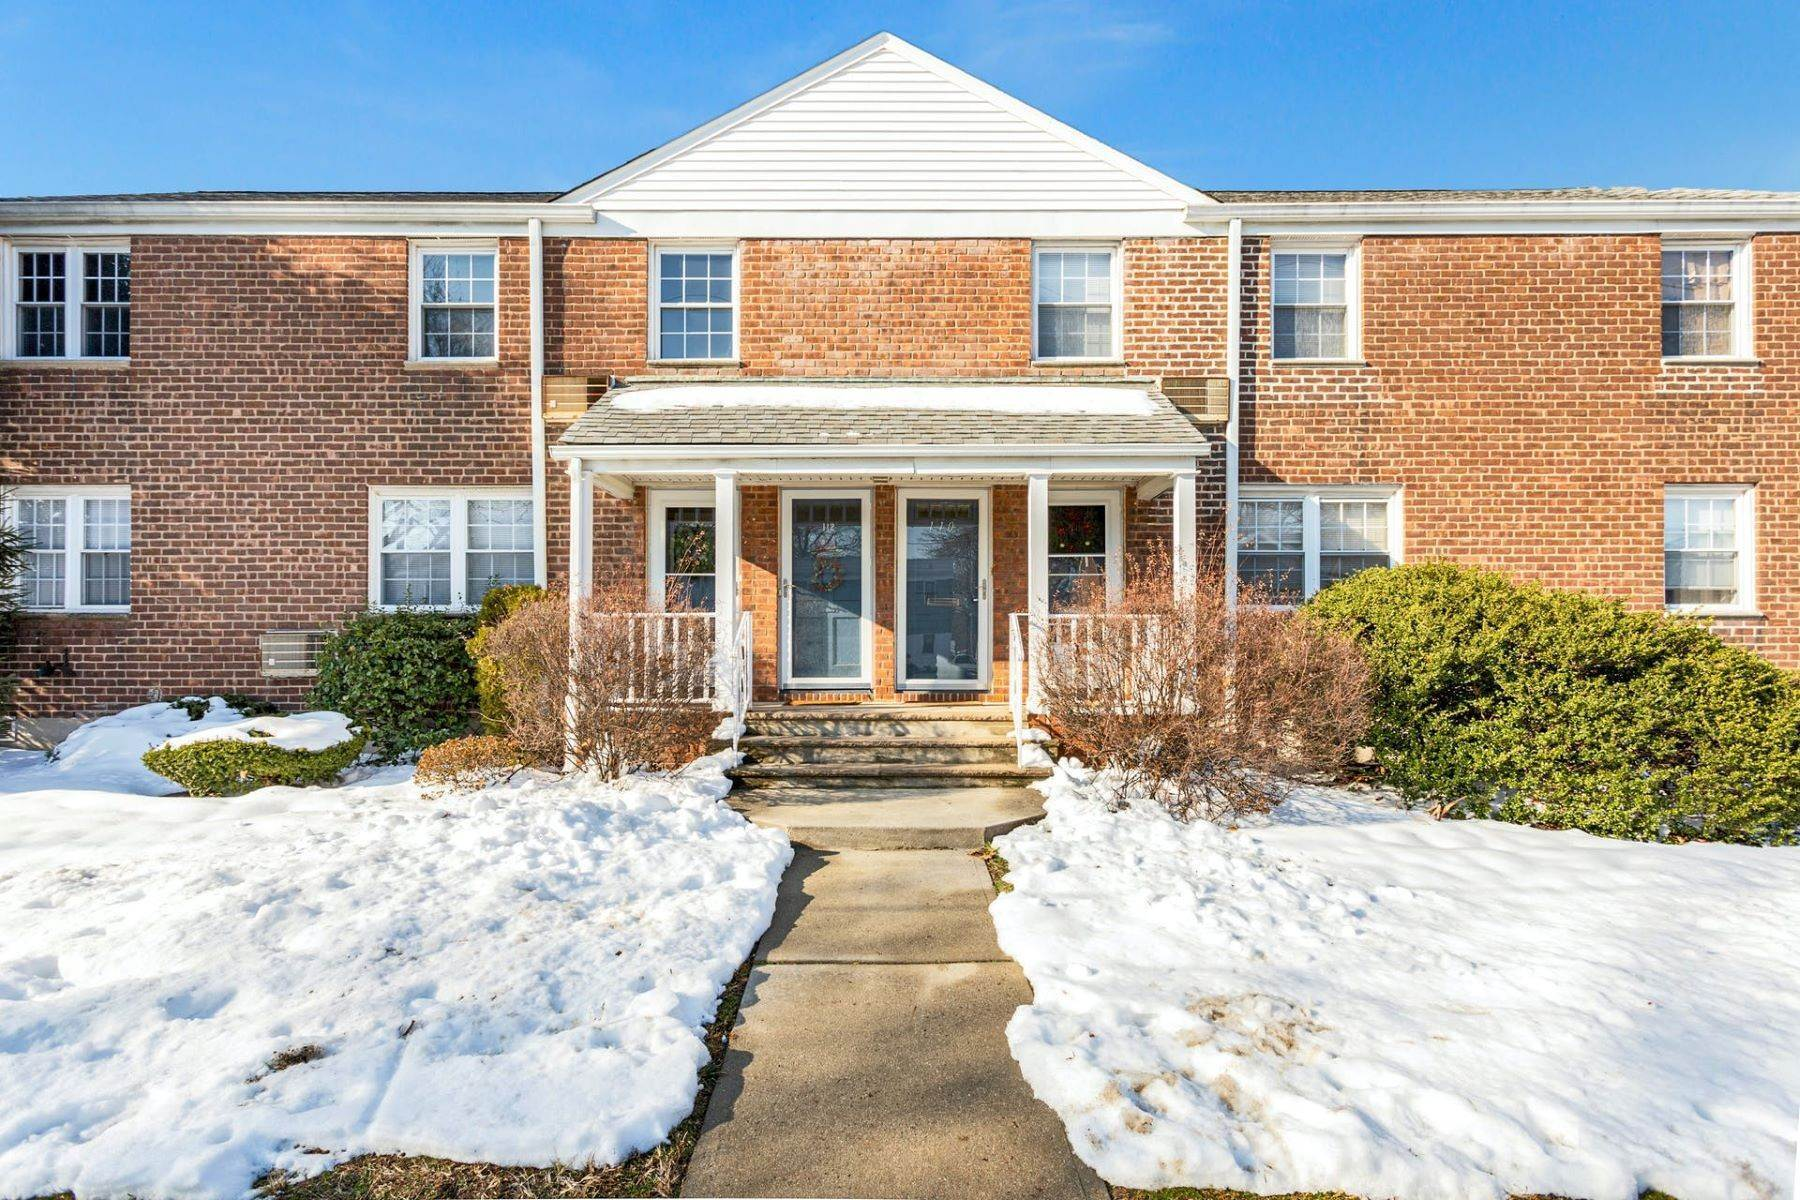 Condominiums for Sale at APPEALING, RENOVATED 2 BEDROOM CONDO 110 Darwin Avenue Rutherford, New Jersey 07070 United States